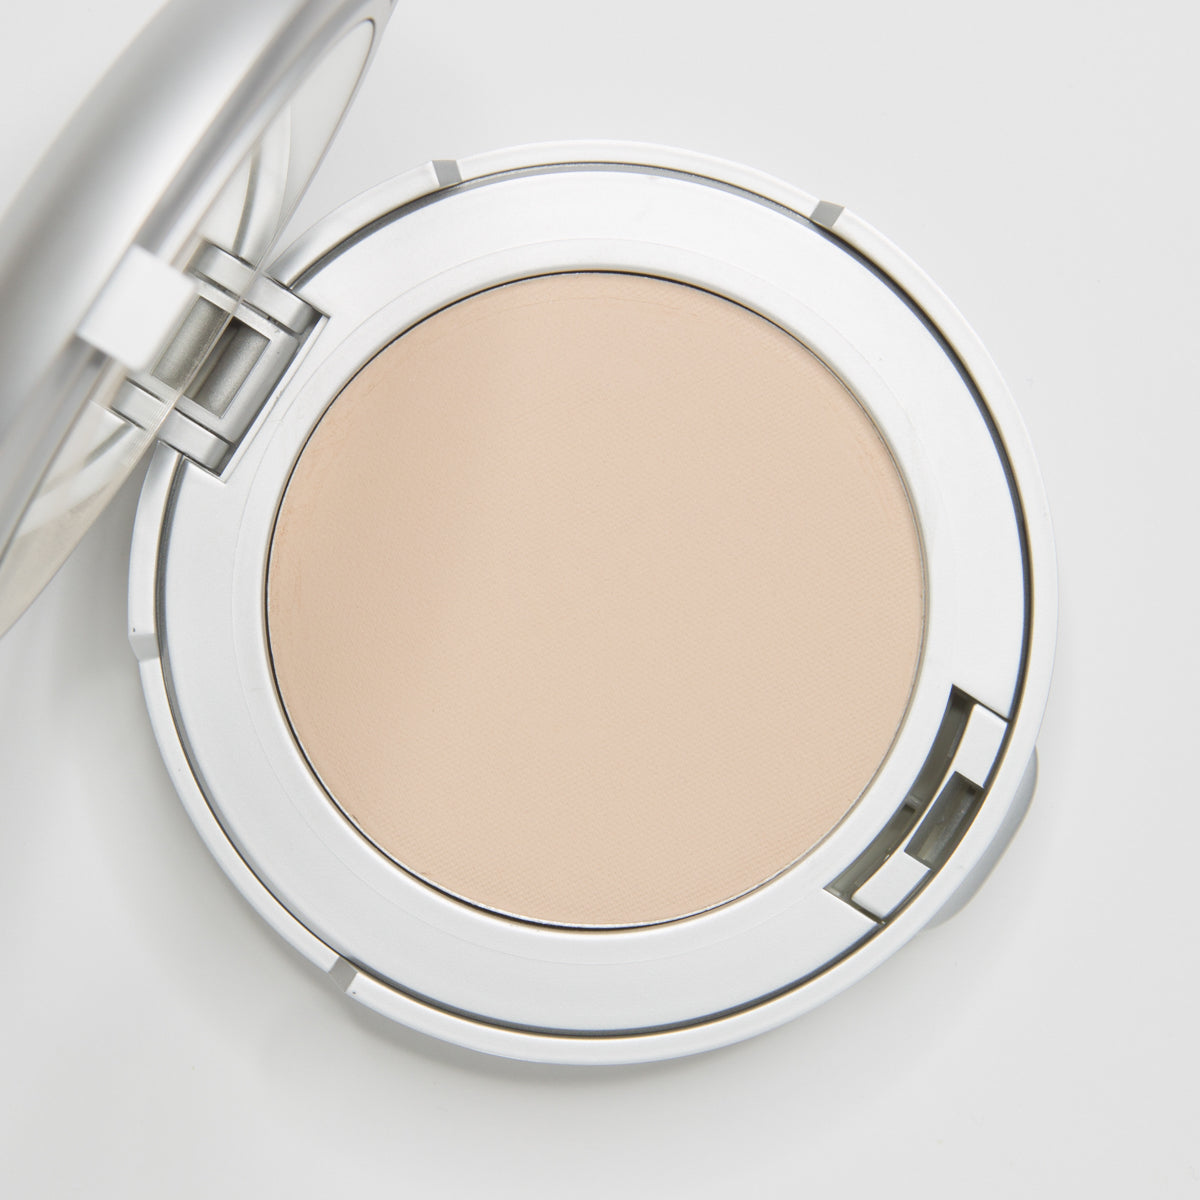 Golden Light Satin Finish Powder